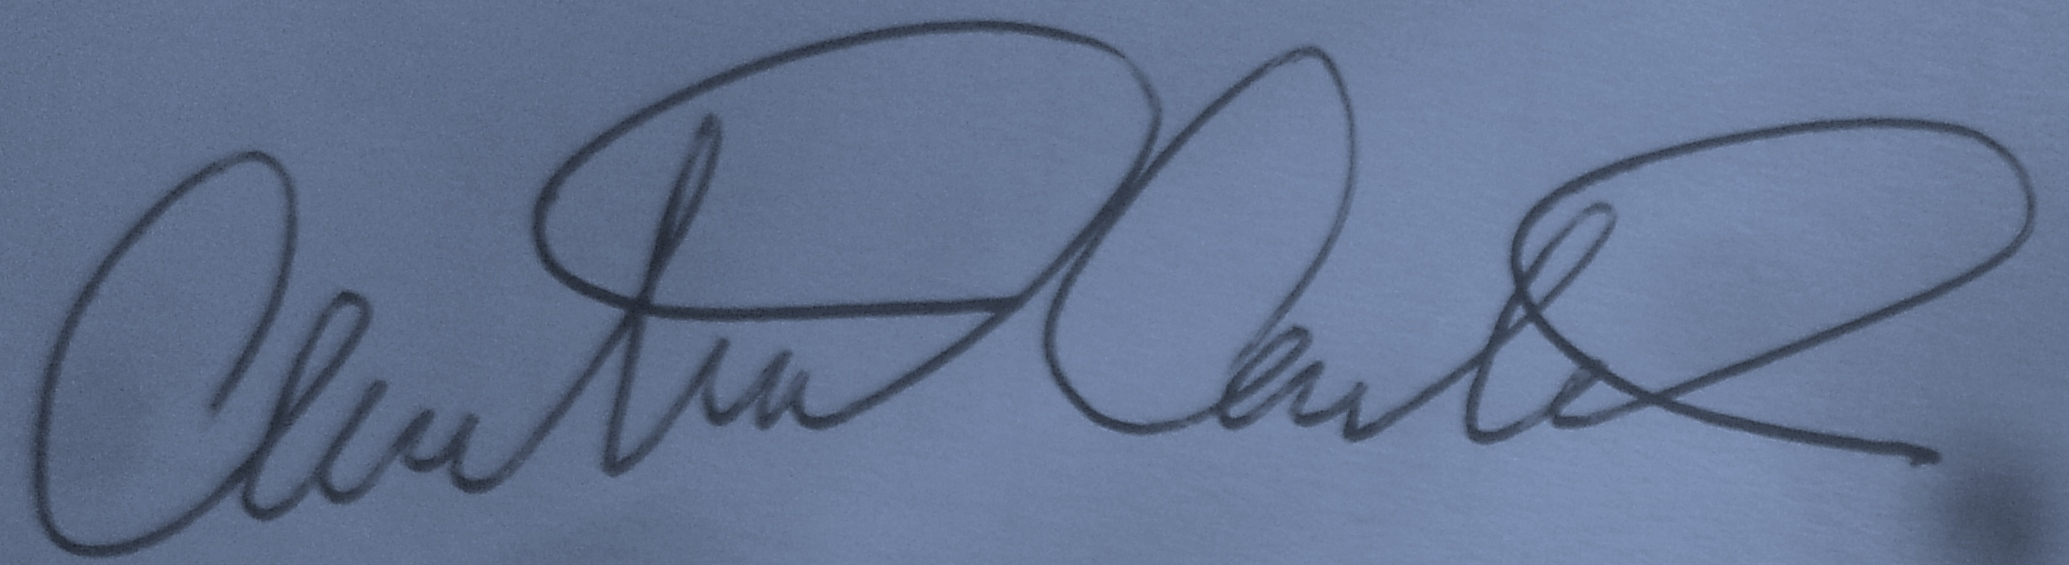 Chris Carter Signature